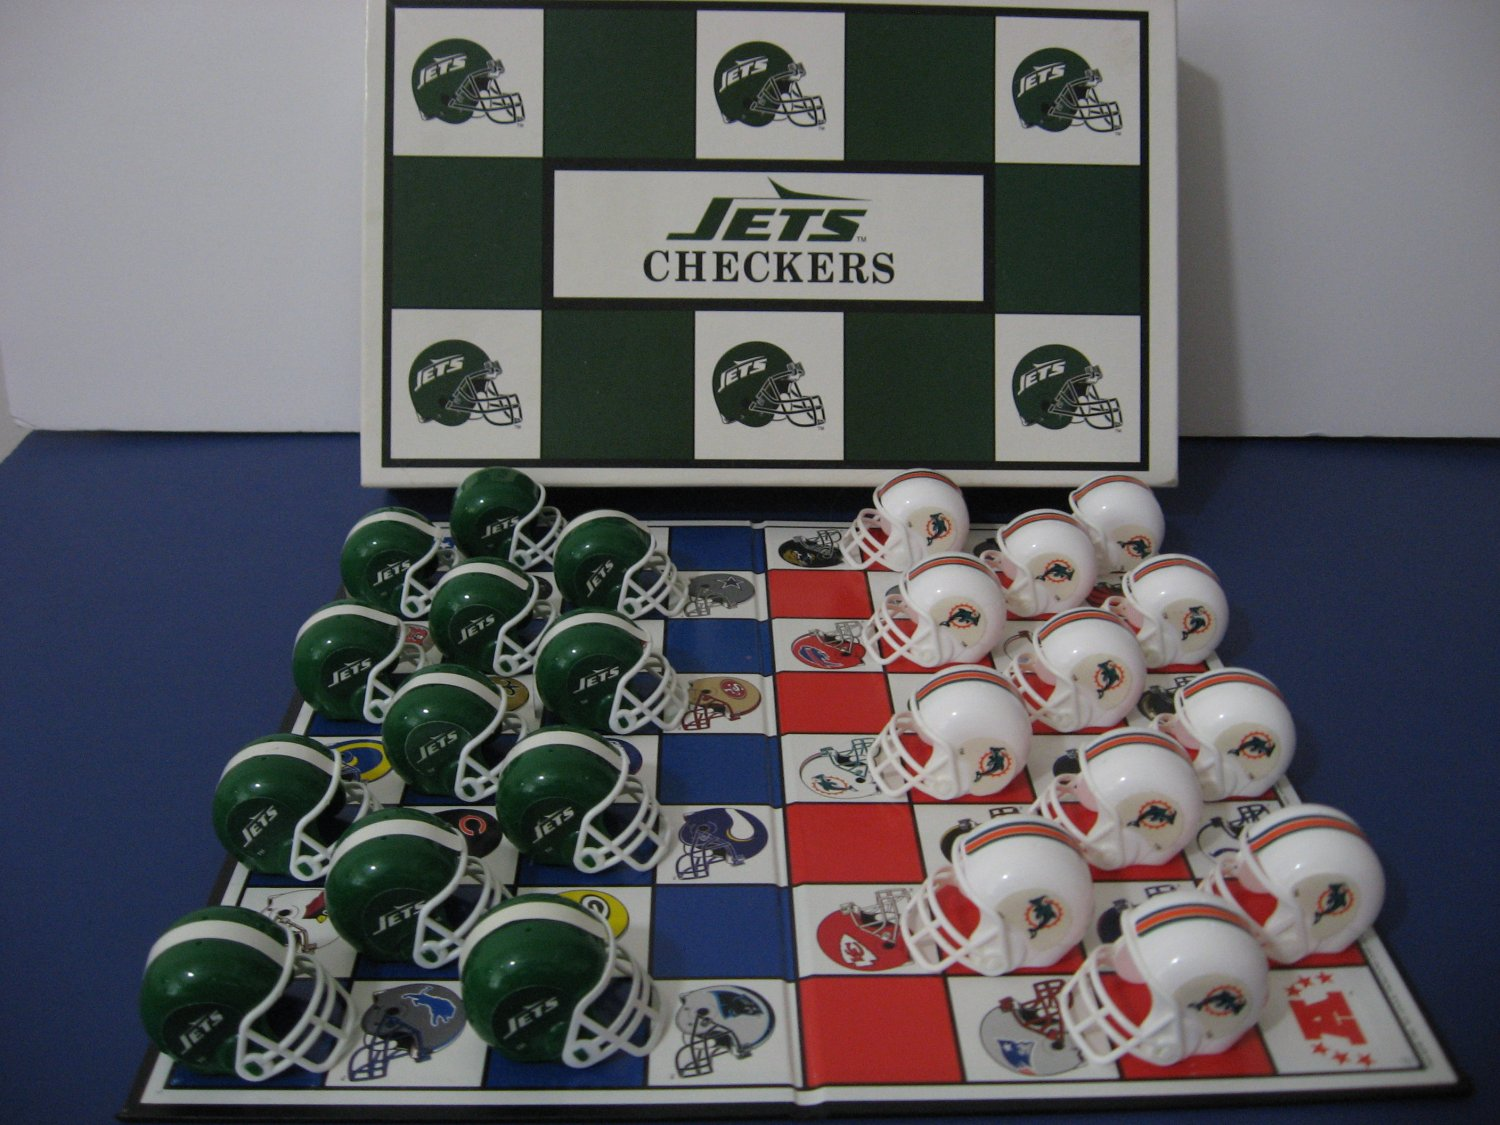 Vintage 1993 - NFL Football -  New York Jets  Vs Miami Dolphins Checker Board Game   (982)